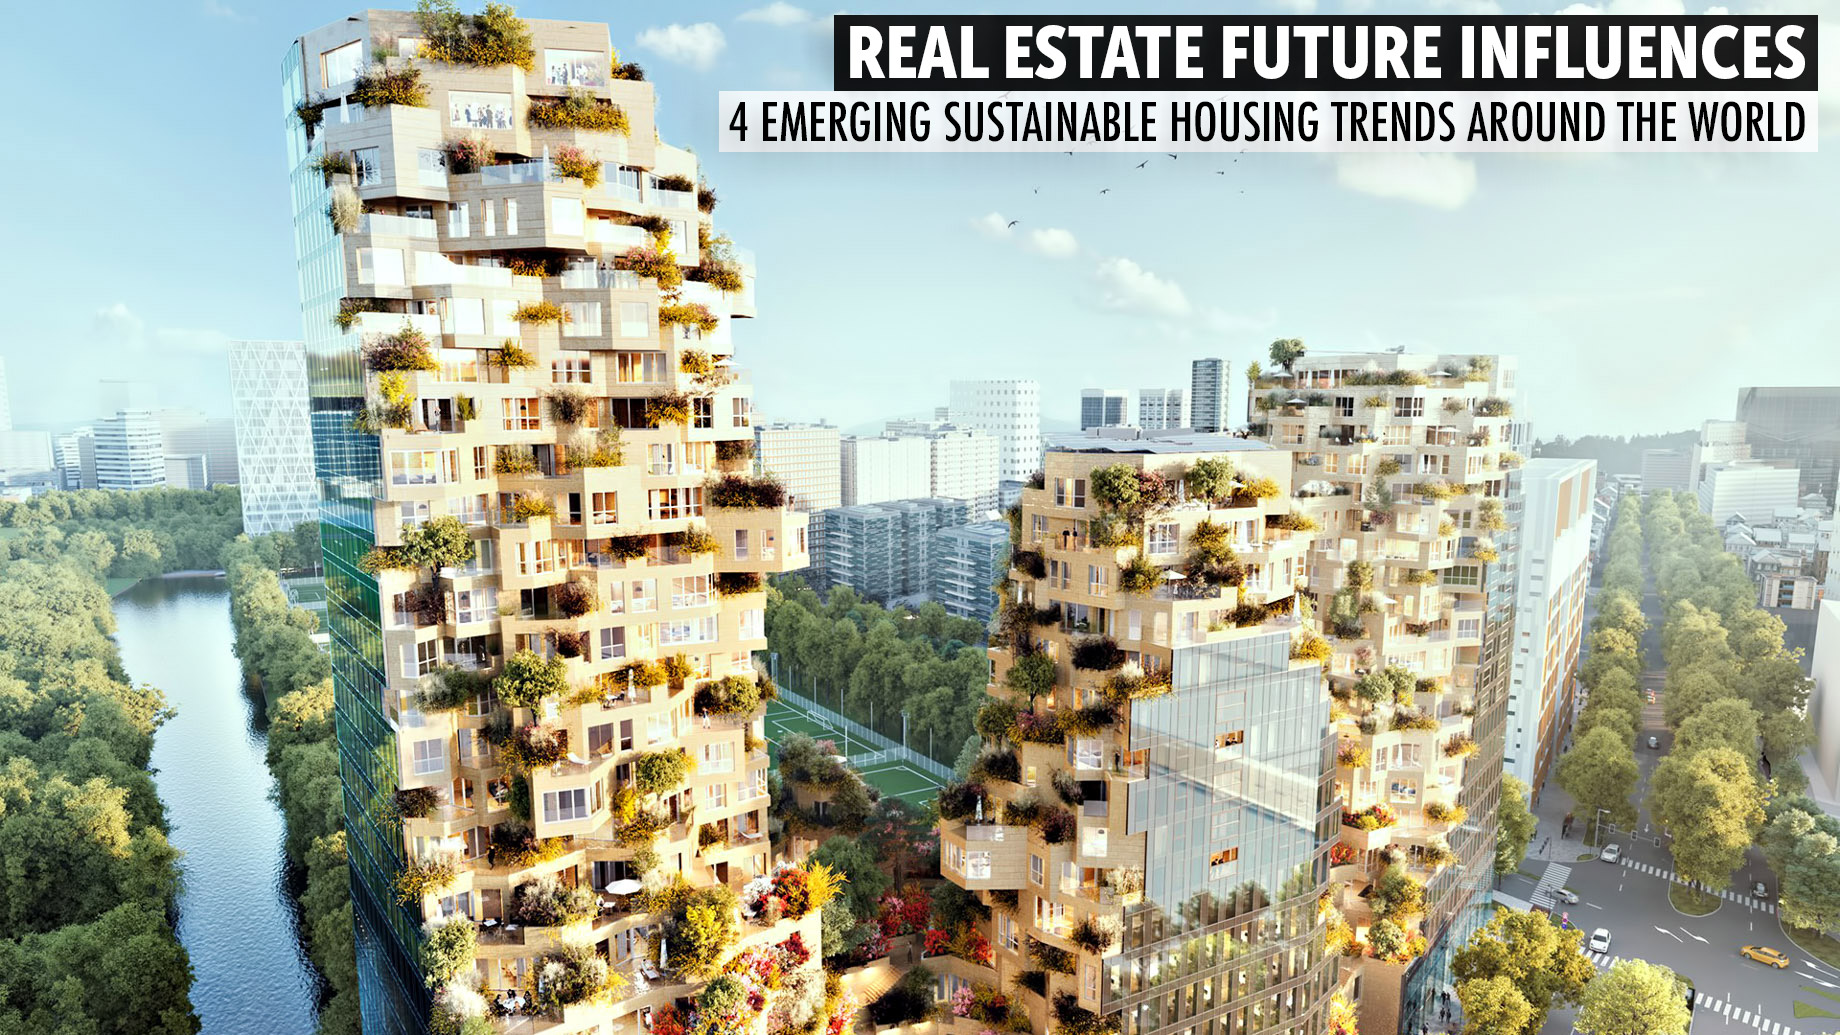 Real Estate Future Influences - 4 Emerging Sustainable Housing Trends Around the World